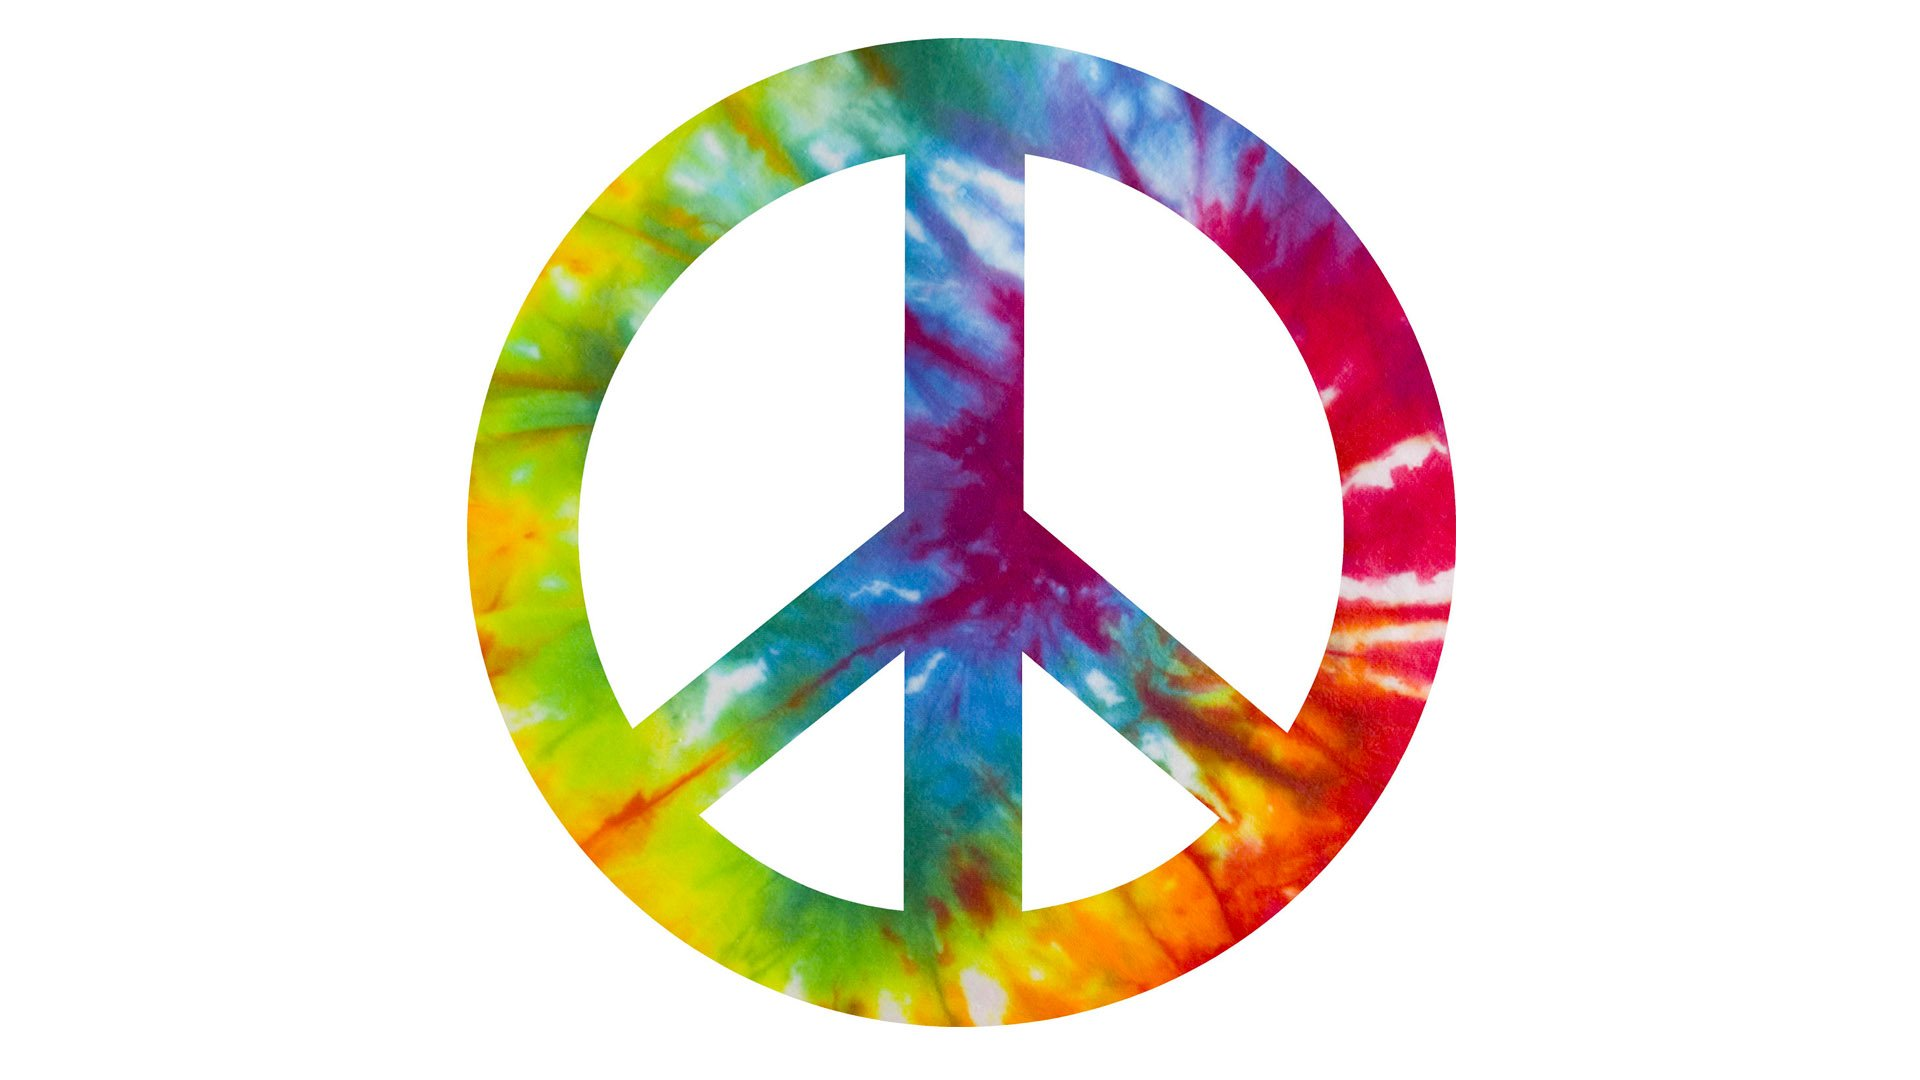 Peace And Love Iphone Wallpaper : Peace HD Wallpaper - WallpaperSafari